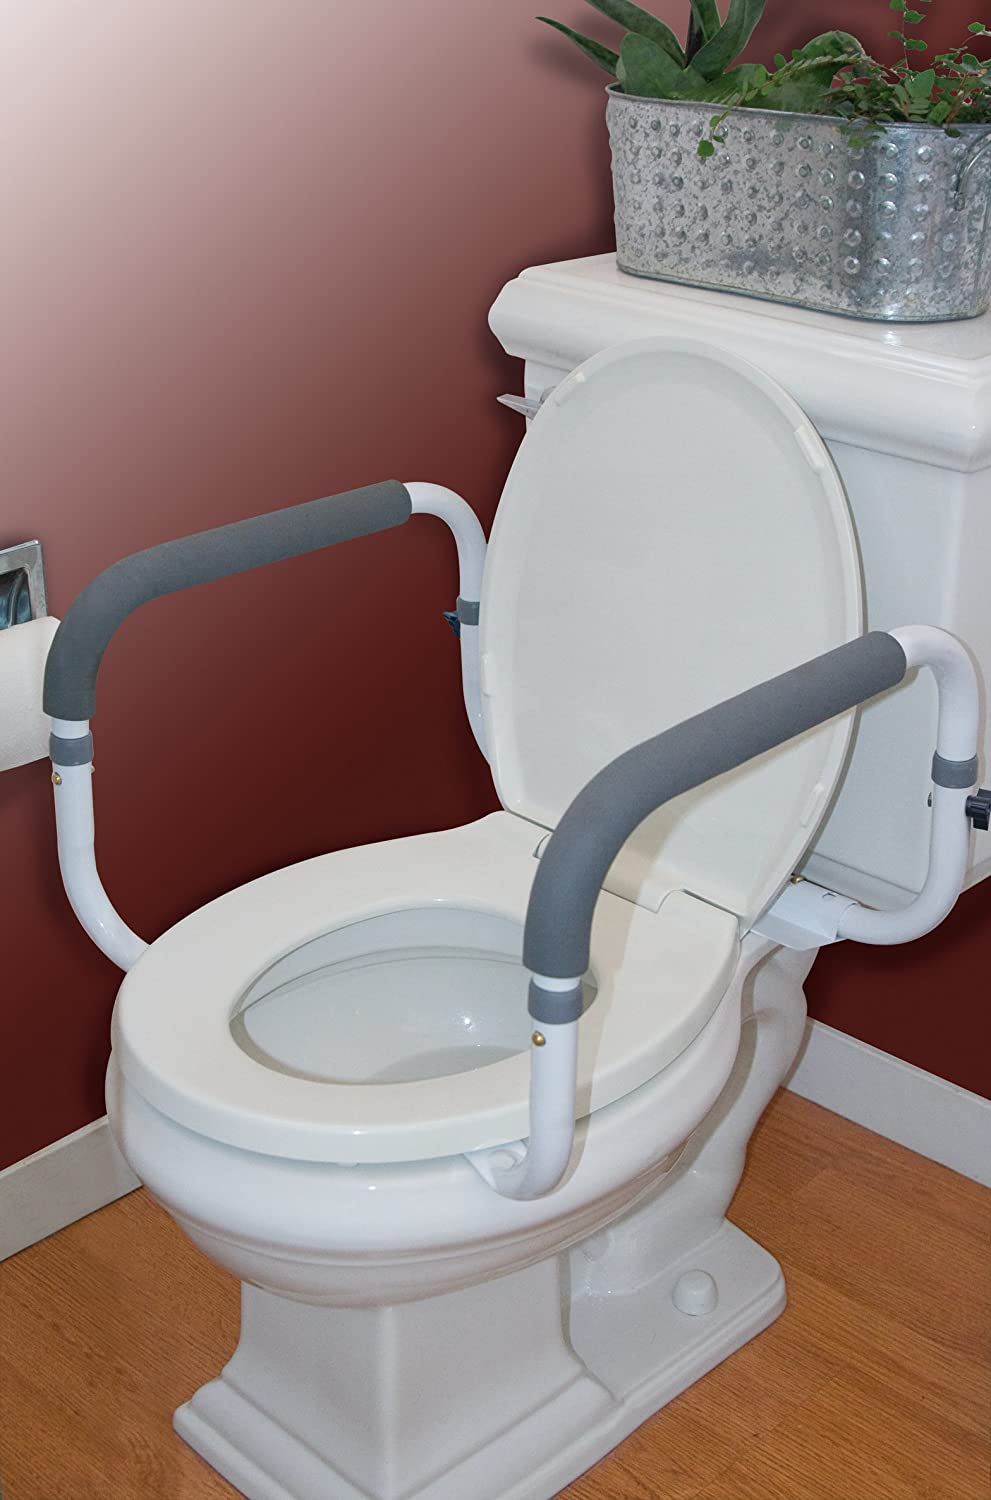 Carex Health Brands Toilet Support Rail New Free